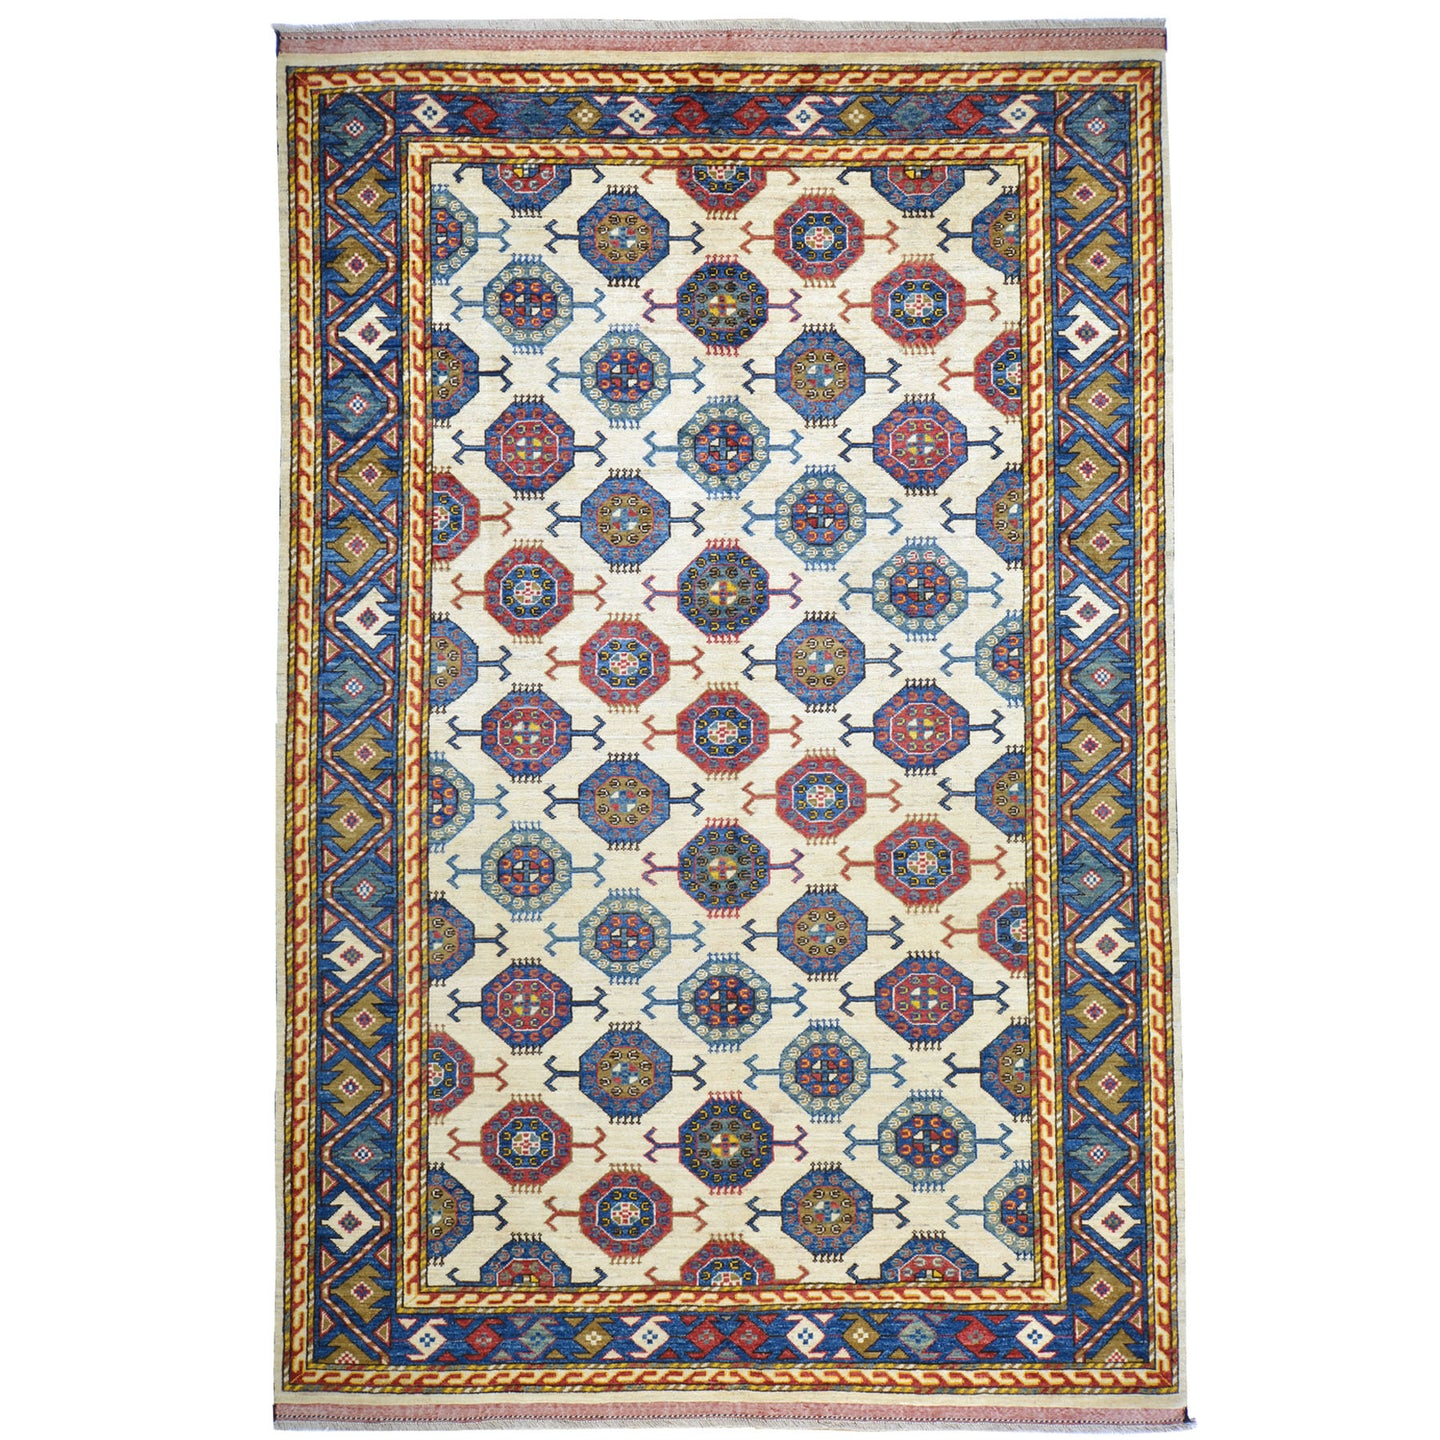 Oriental rugs, hand-knotted carpets, sustainable rugs, classic world oriental rugs, handmade, United States, interior design,  Brral-6570